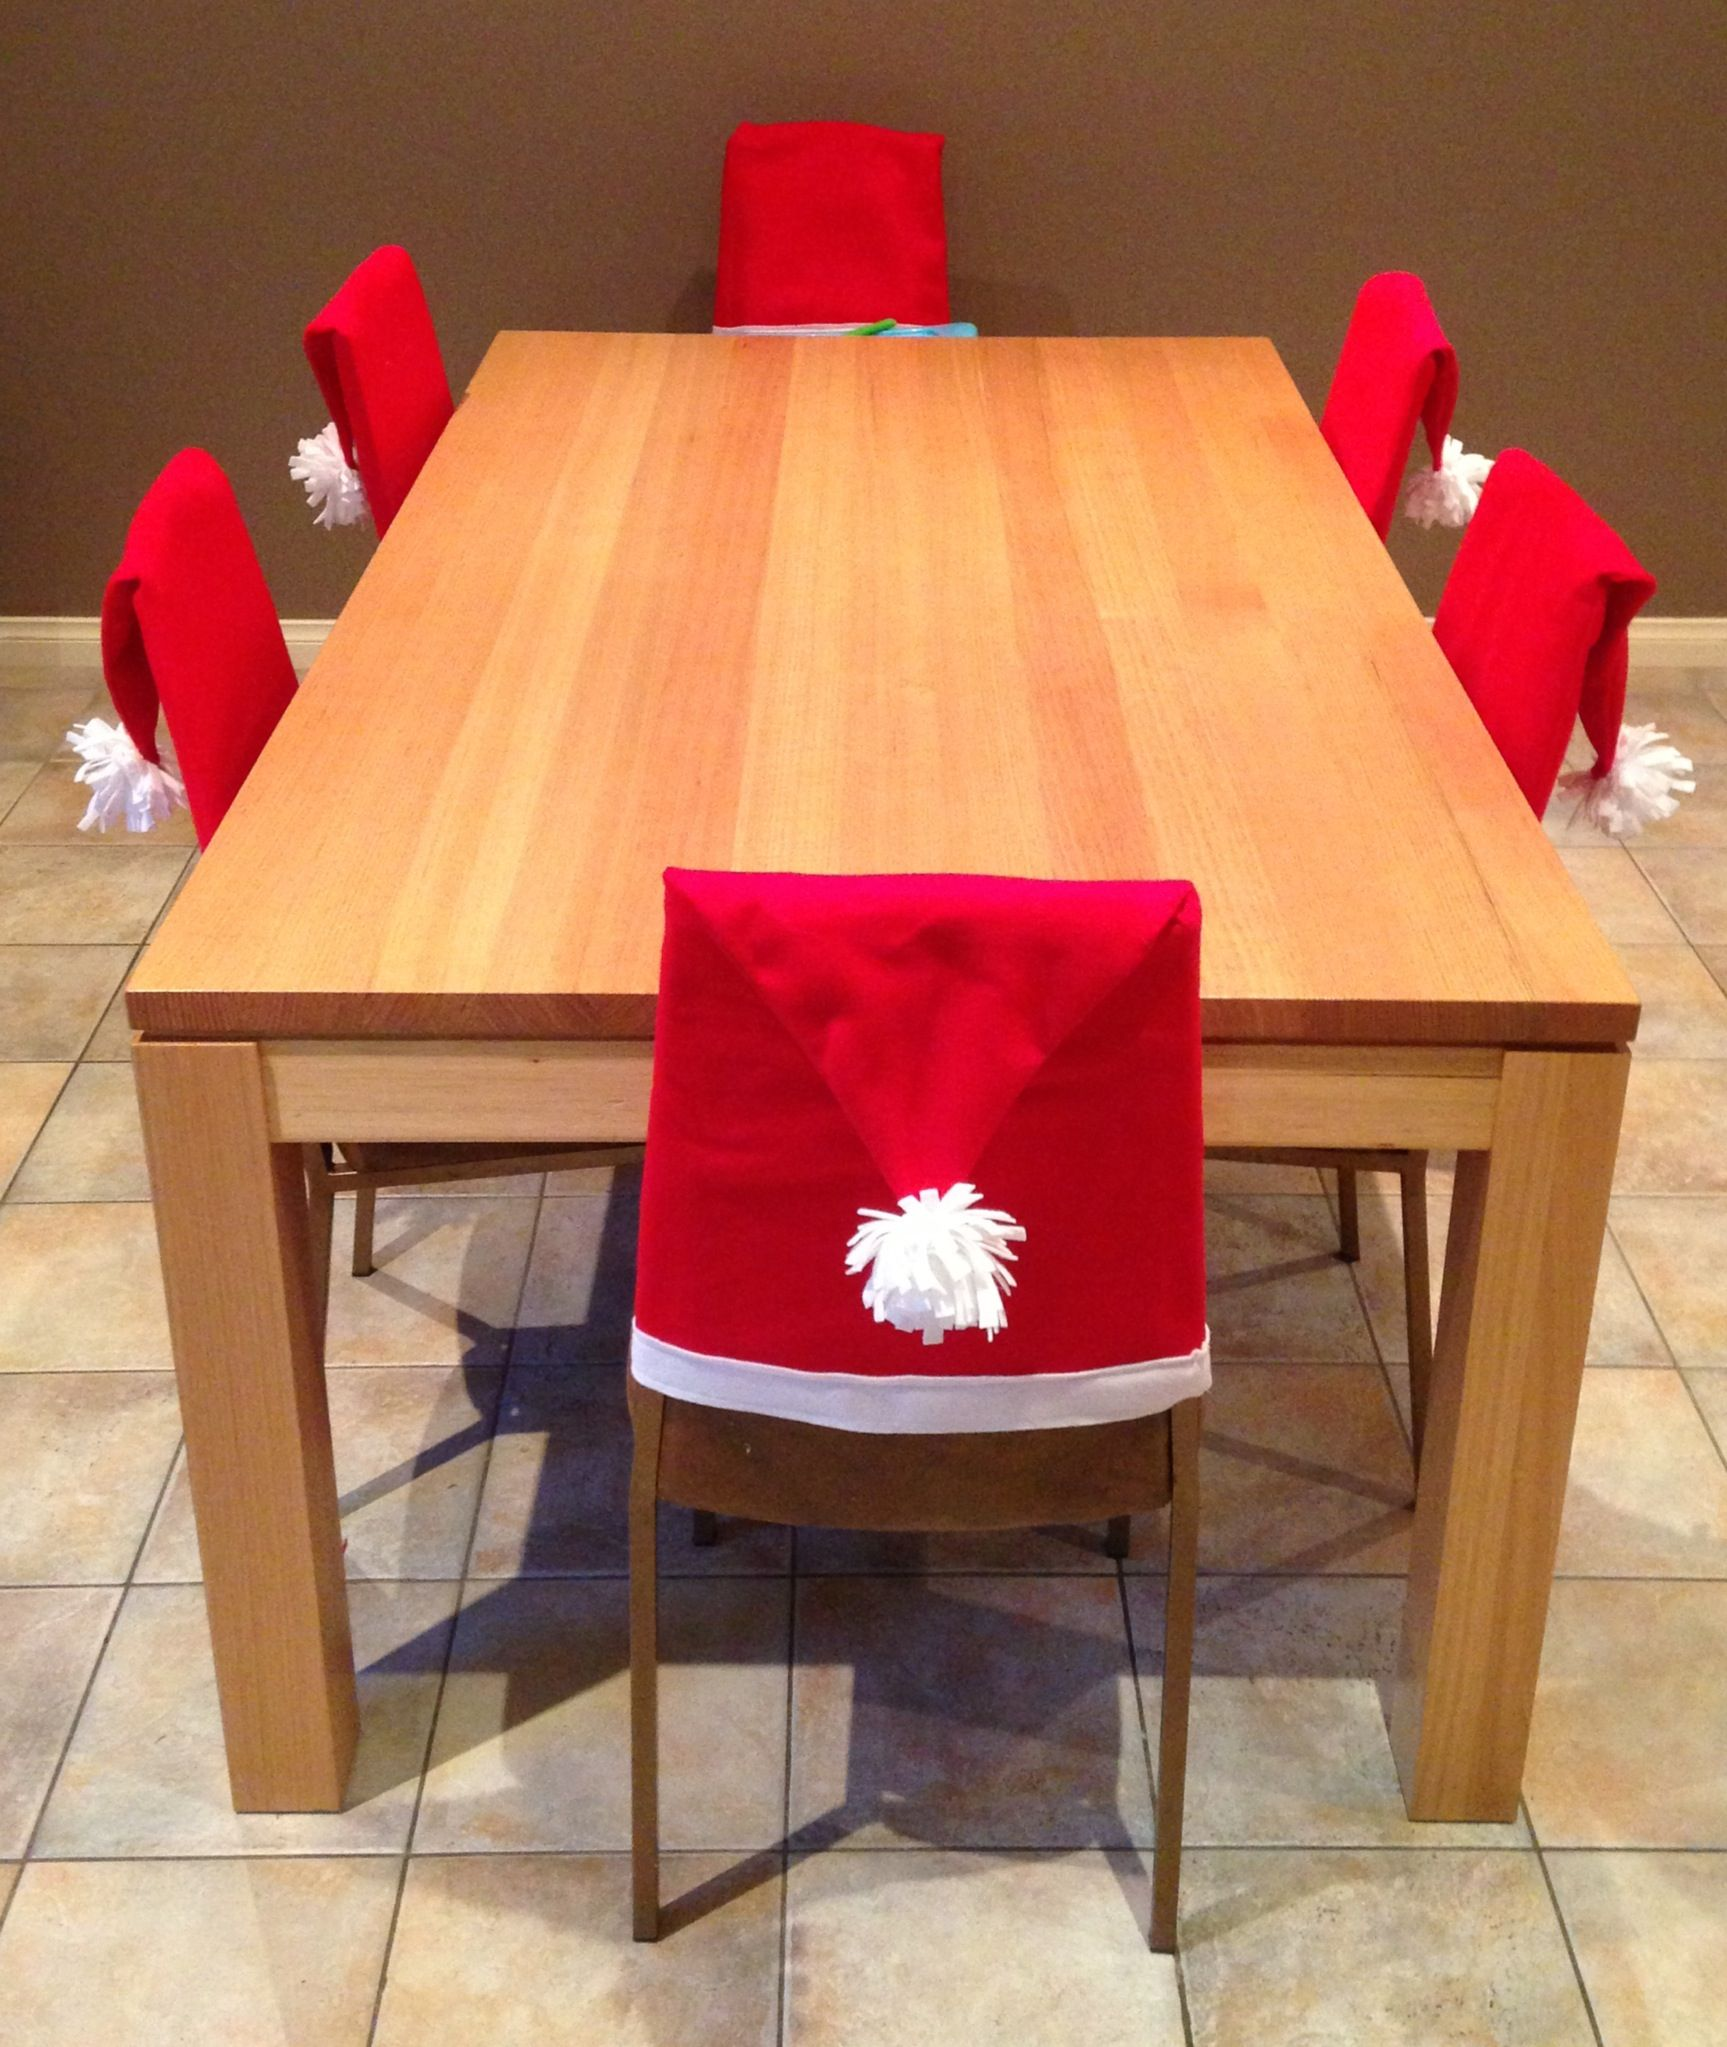 I love Christmas so much and these Santa hat chair covers